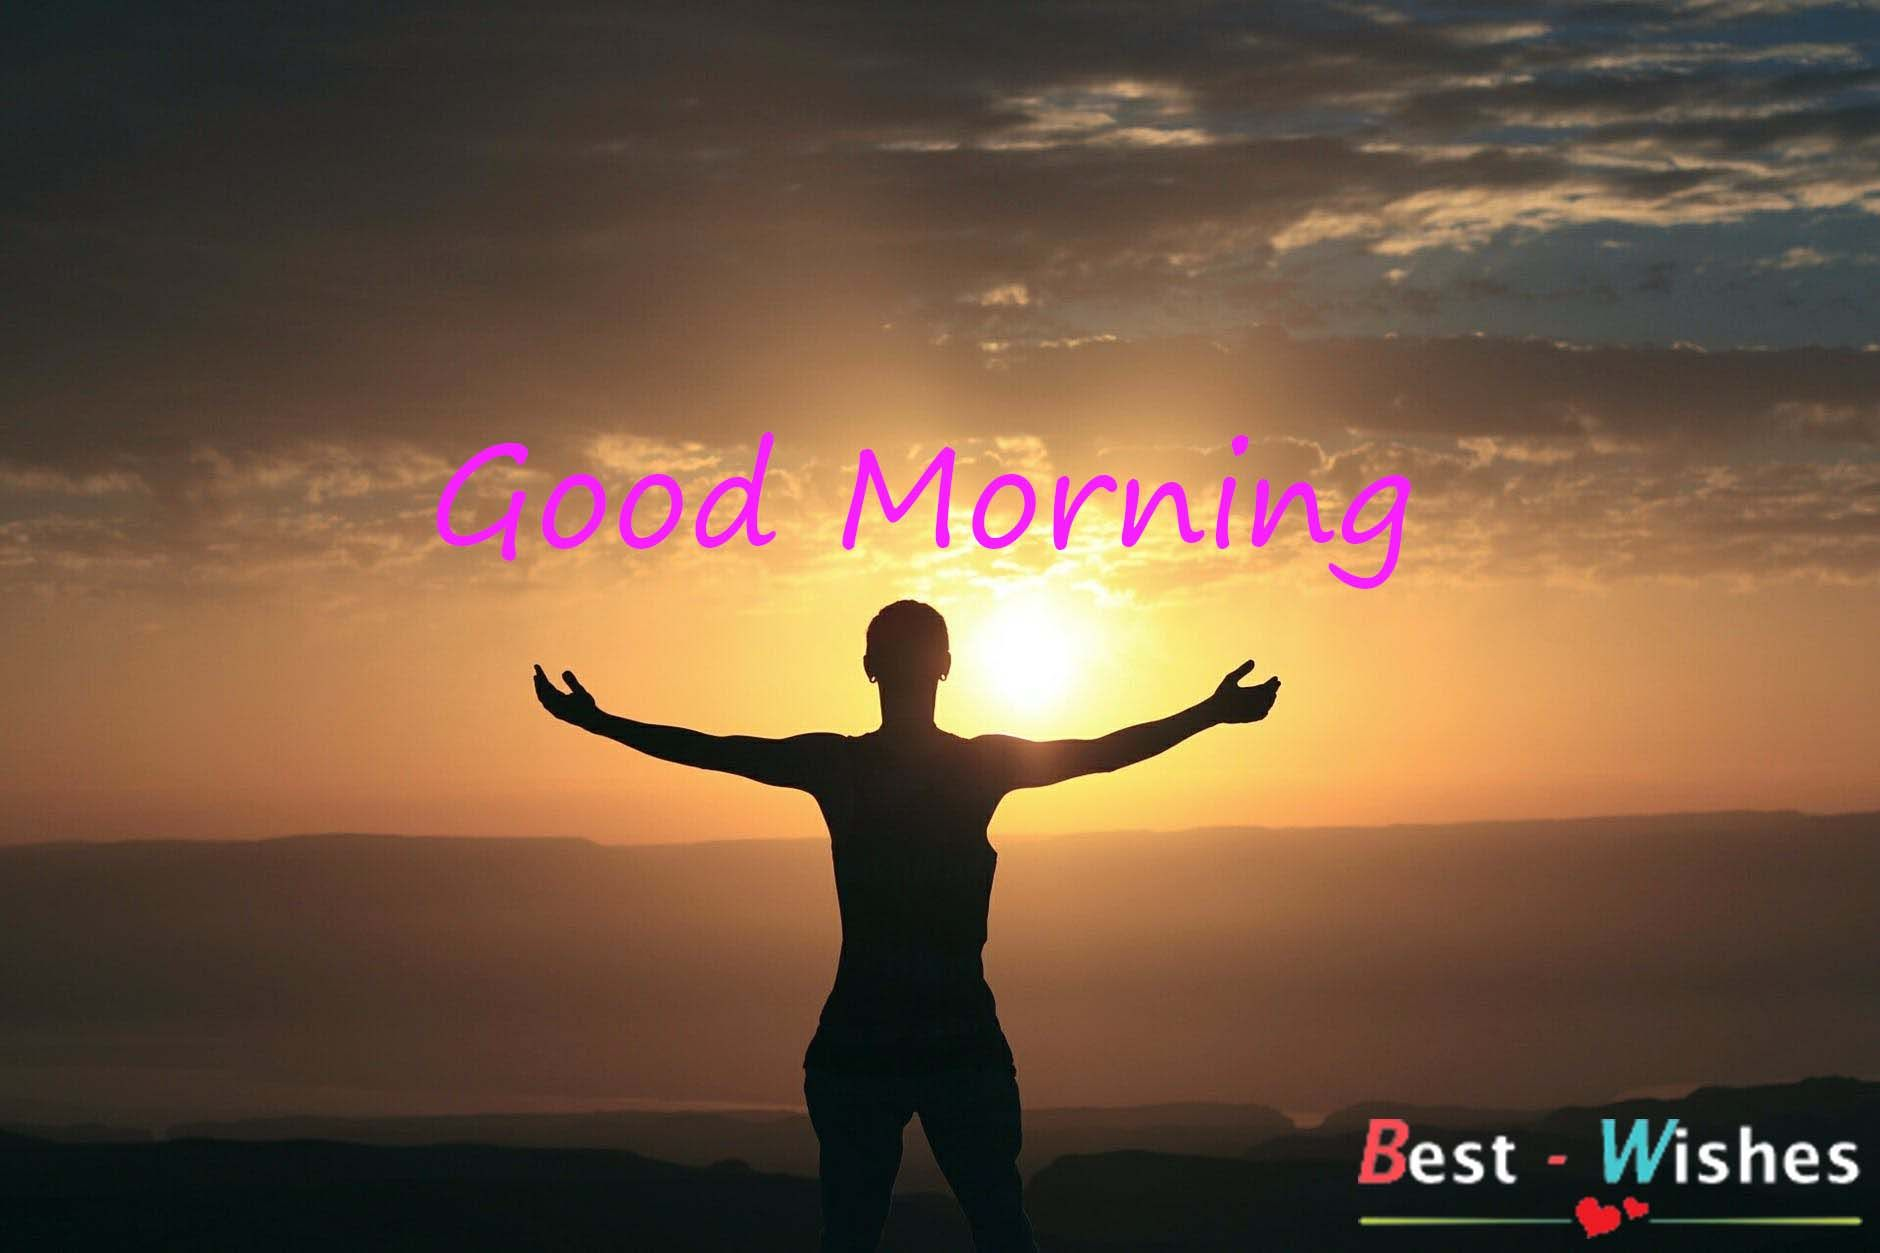 Good morning message sweet good morning greetings message text bf5ba0049f514d70f930e3e315708654g m4hsunfo